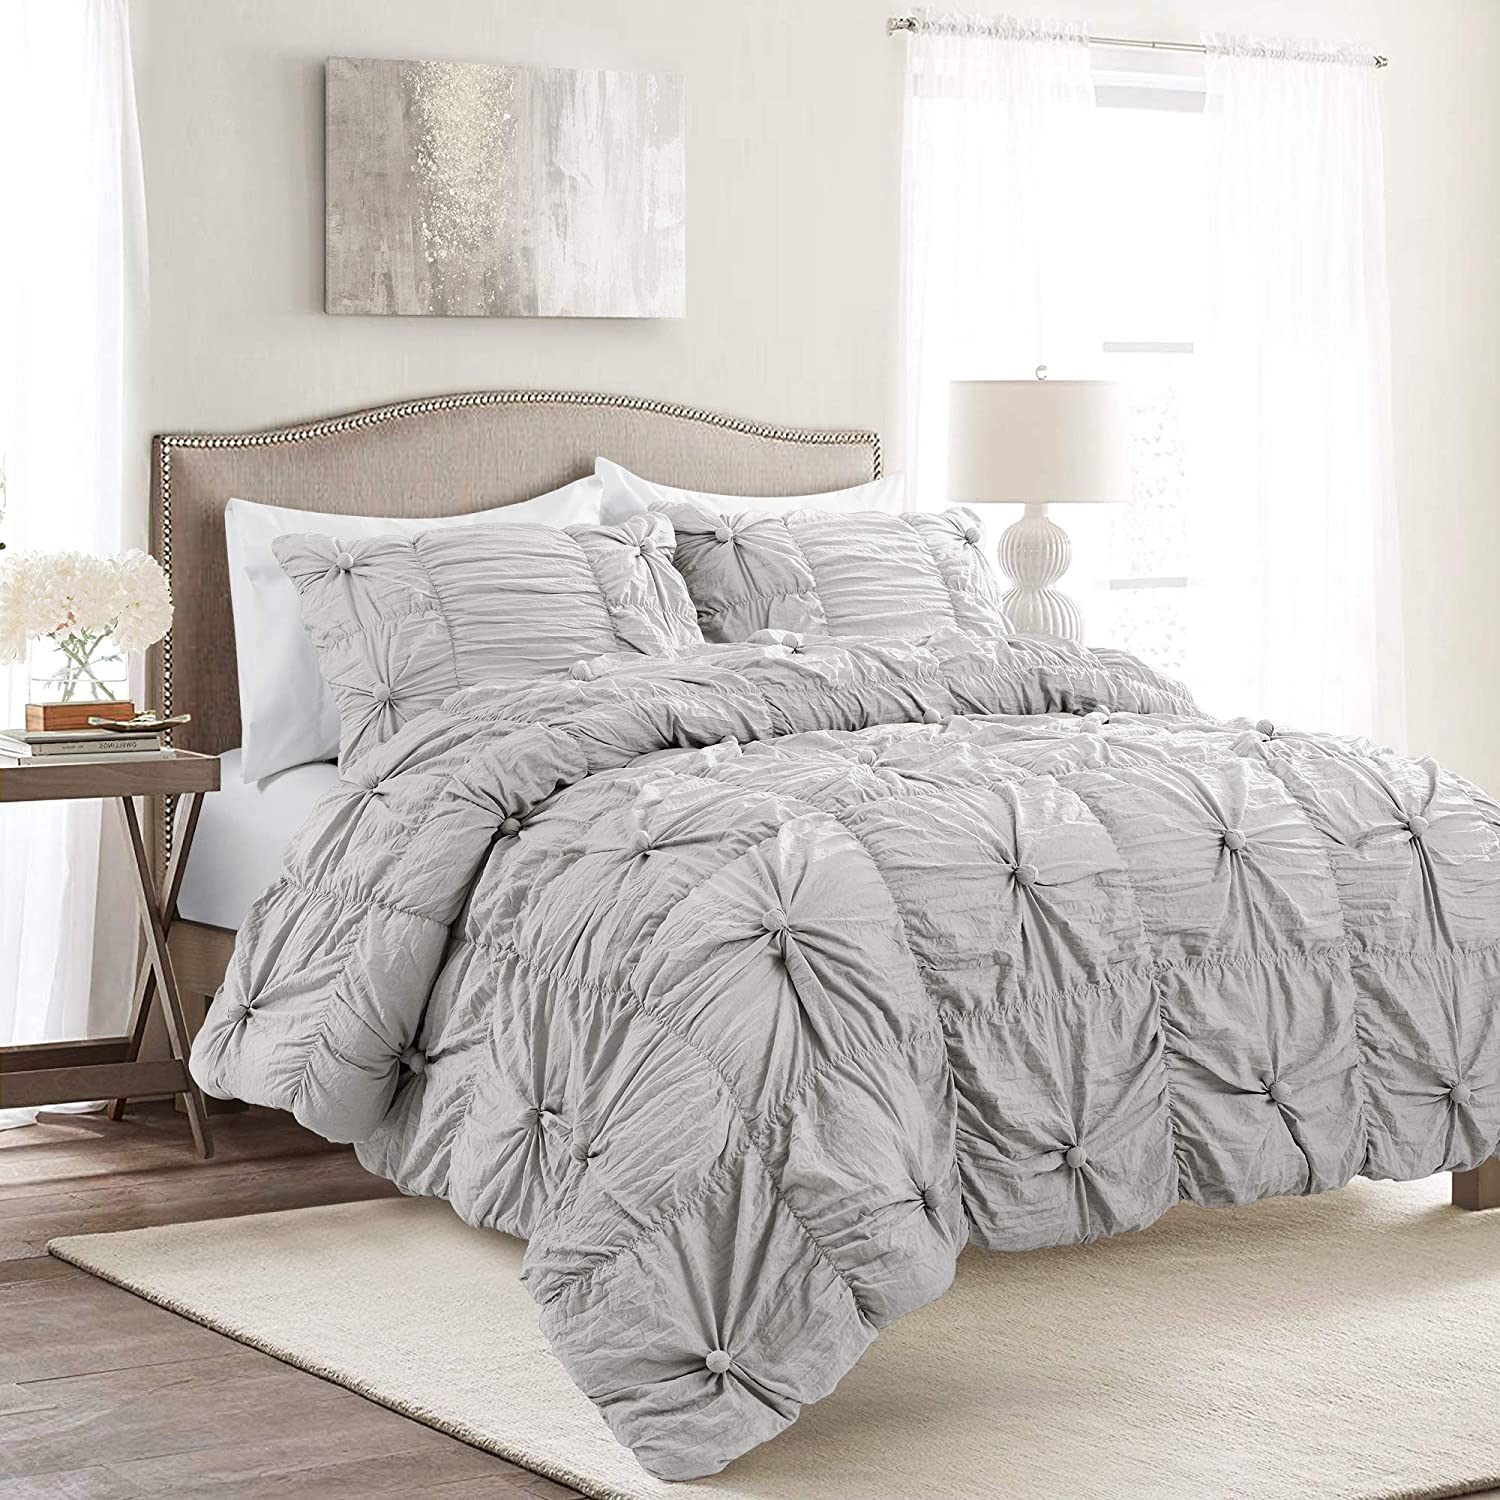 Lush Decor Bella Comforter Set Shabby Chic Style Ruched 3 Piece Bedding with Pillow Shams-Full Queen-Light Gray